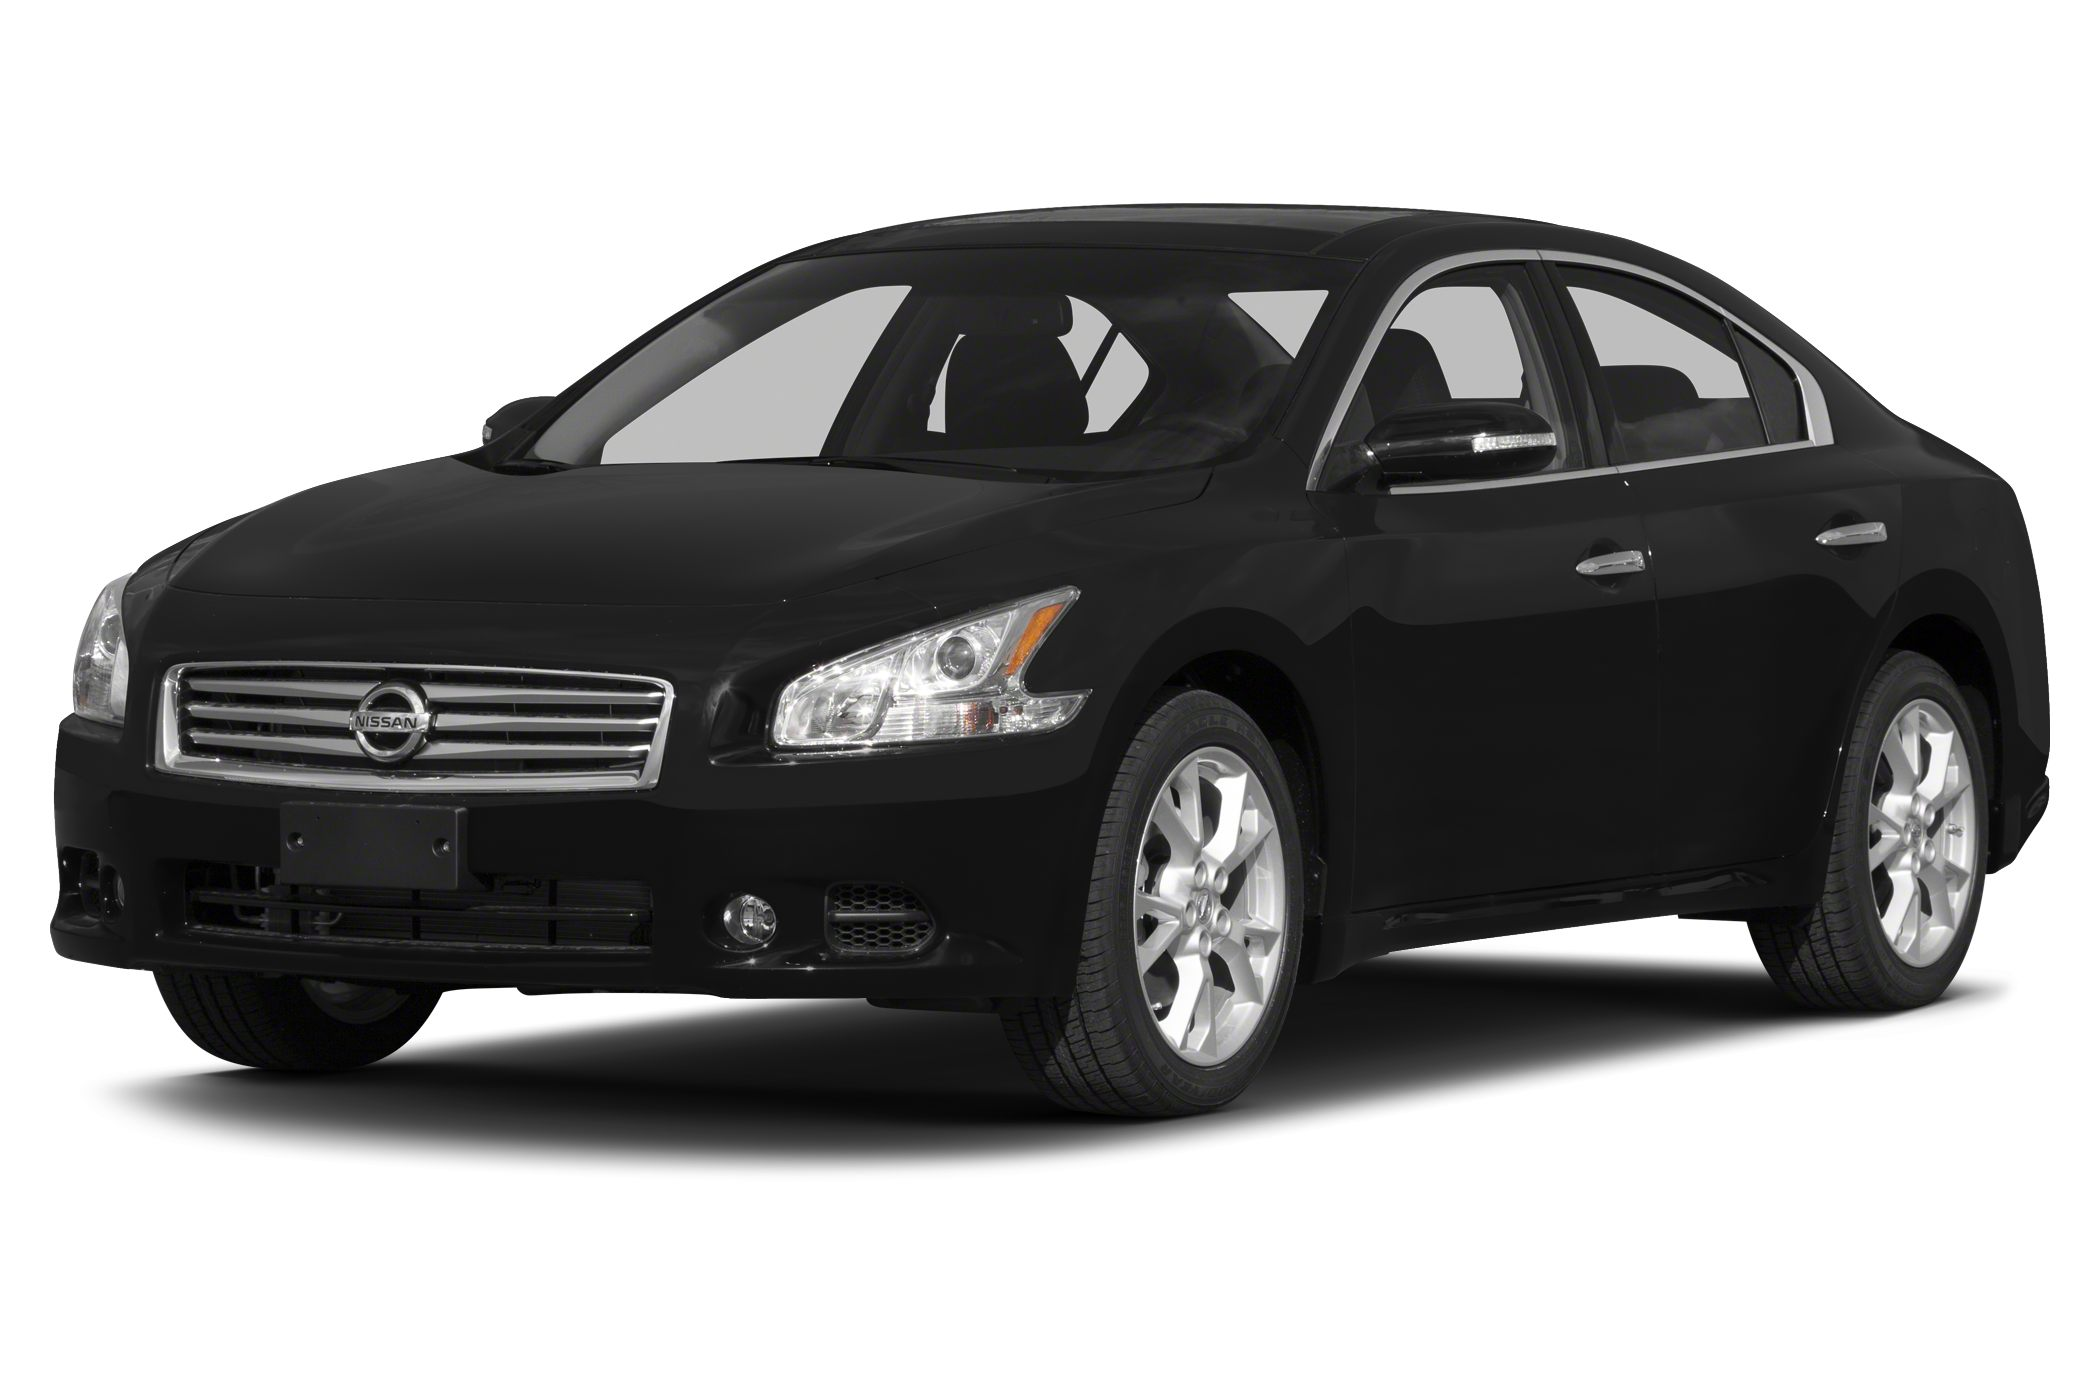 2013 Nissan Maxima 35 S Vehicle Detailed Recent Oil Change and Passed Dealer Inspection Has st